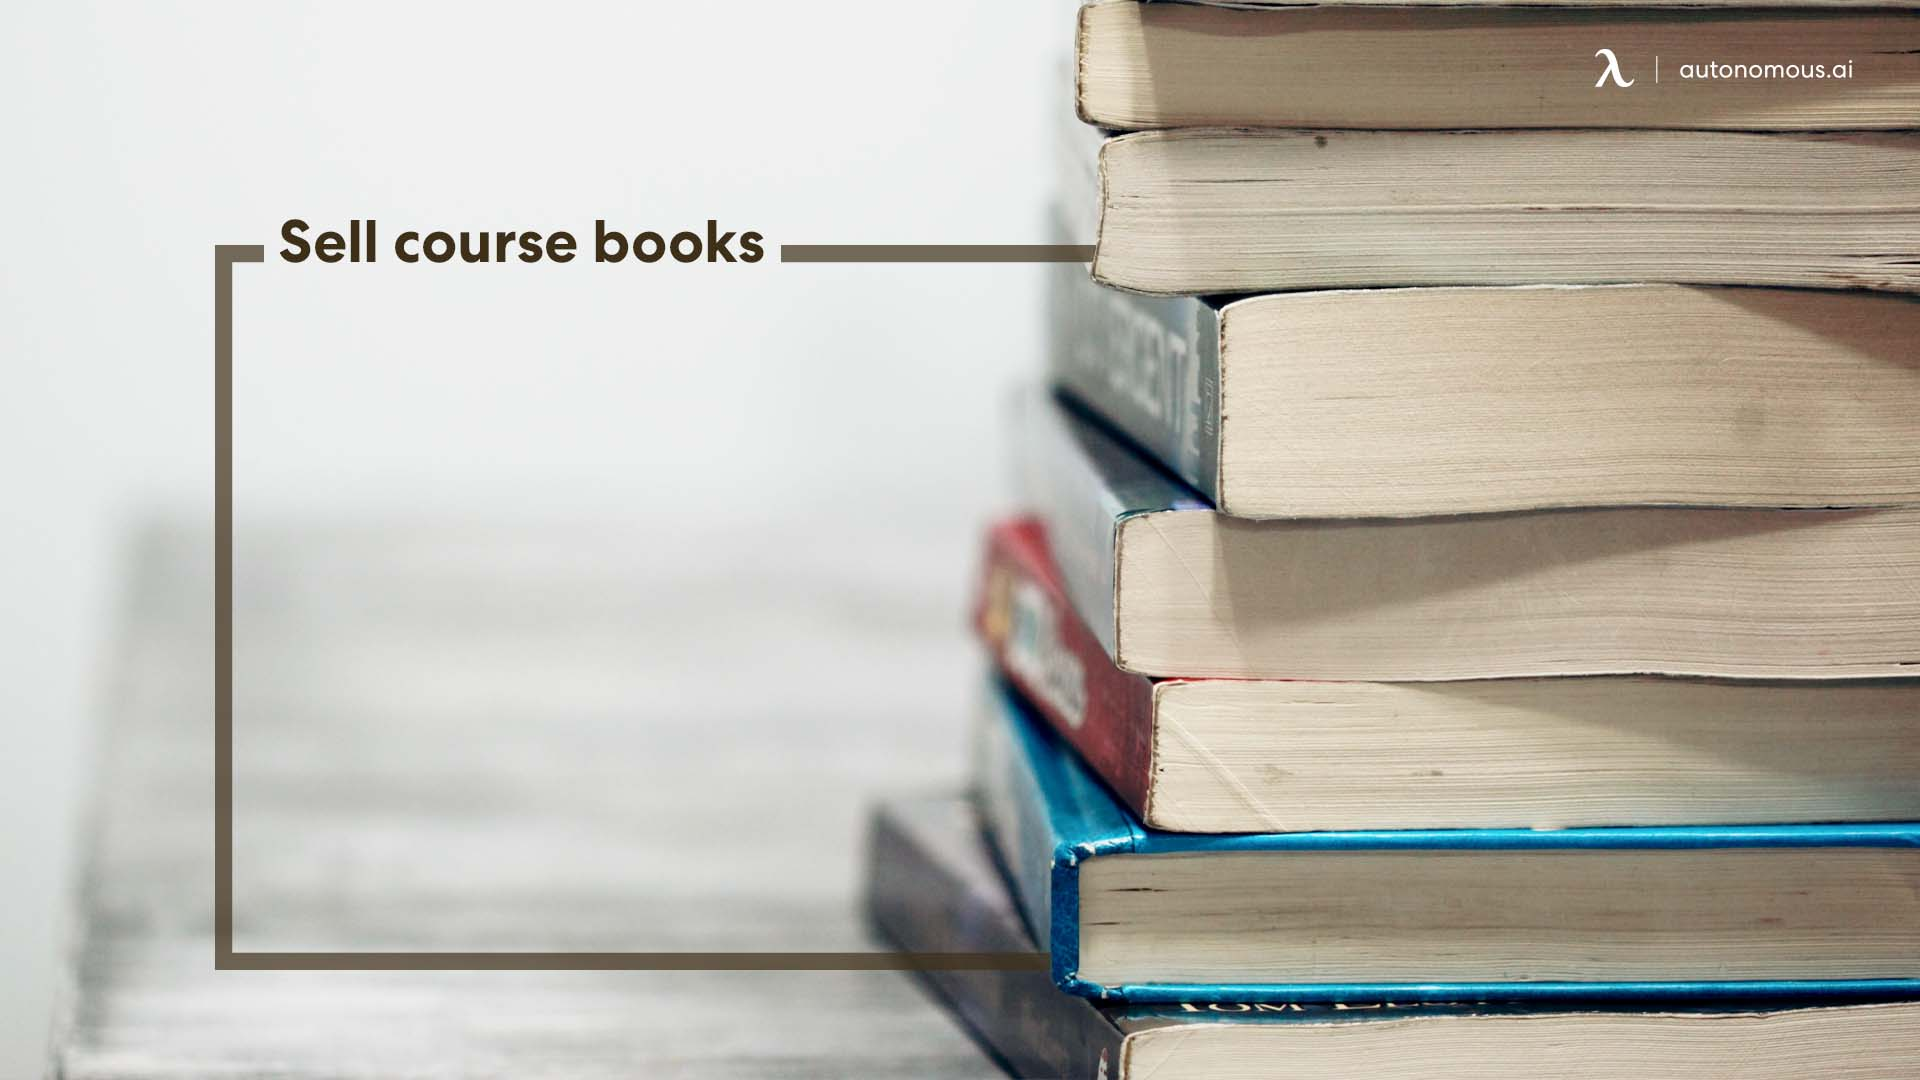 Sell course books